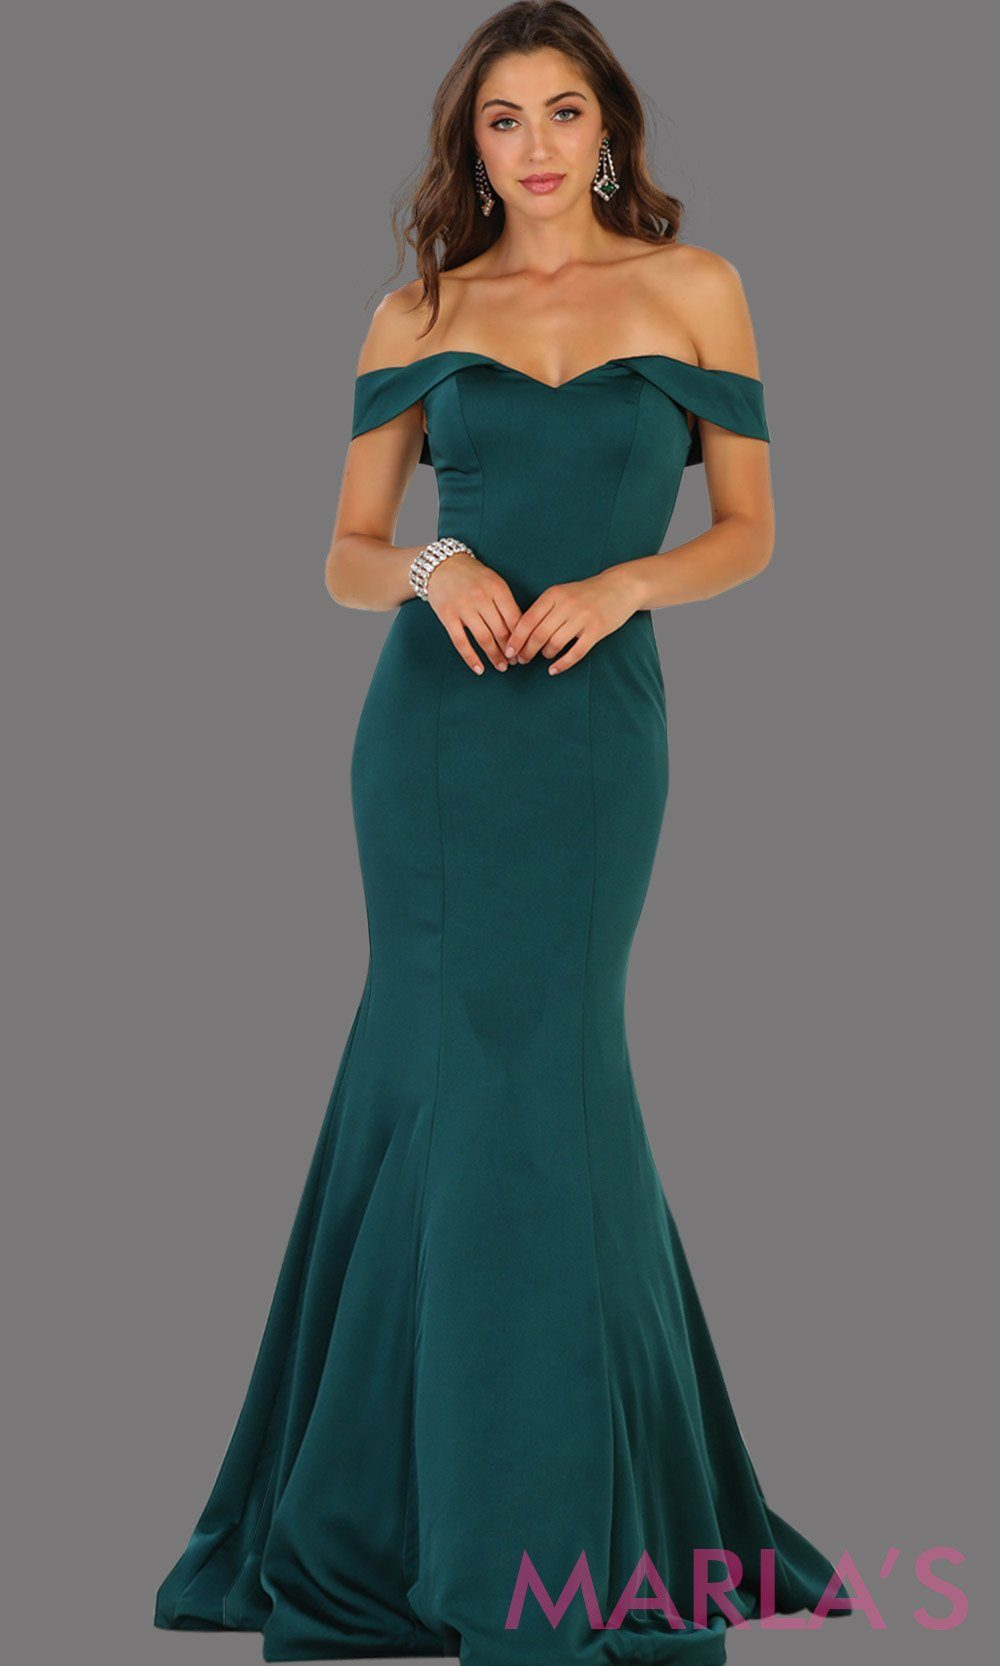 Long off shoulder dark green fitted mermaid dress. This sleek and sexy dress is perfect as a bridesmaid dress, formal wedding party dress, wedding guest dress, gala gown, charity event dress. Available in plus size